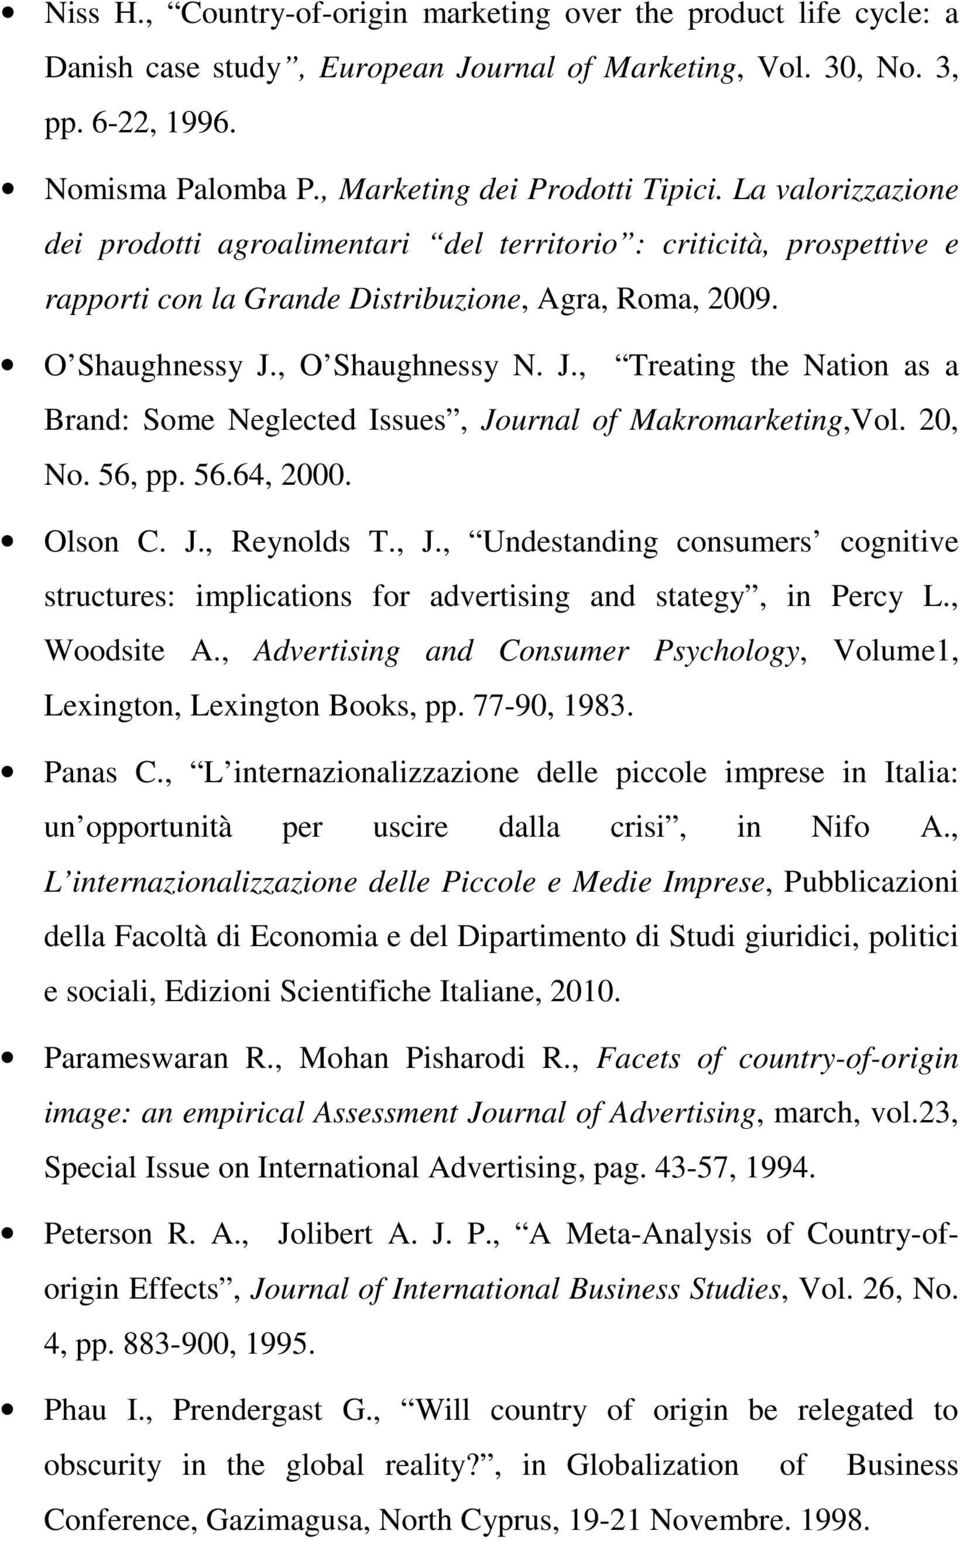 , O Shaughnessy N. J., Treating the Nation as a Brand: Some Neglected Issues, Journal of Makromarketing,Vol. 20, No. 56, pp. 56.64, 2000. Olson C. J., Reynolds T., J., Undestanding consumers cognitive structures: implications for advertising and stategy, in Percy L.